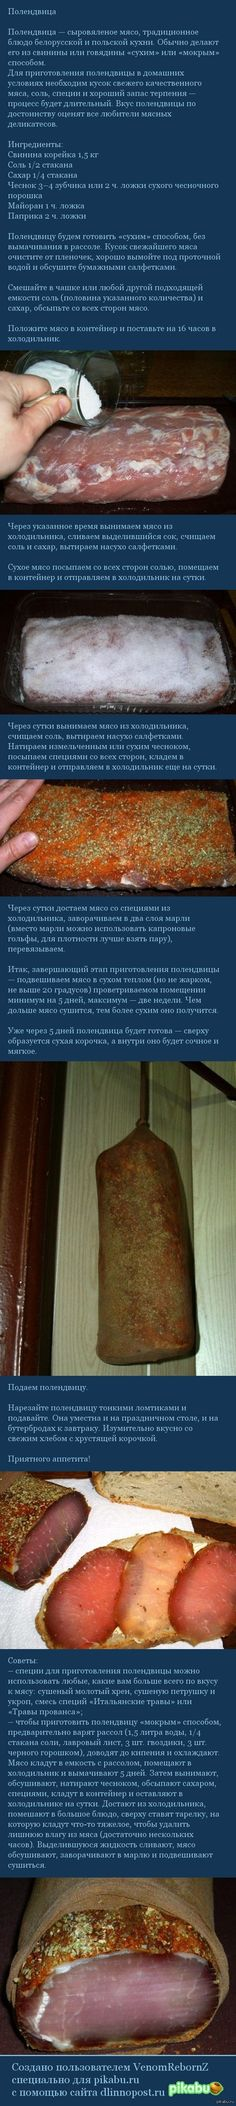 Полендвица(вяленое мясо) - рецепт Fish Recipes, Meat Recipes, Cooking Recipes, How To Make Sausage, Food To Make, Food Photo, Food Dishes, Good Food, Food And Drink